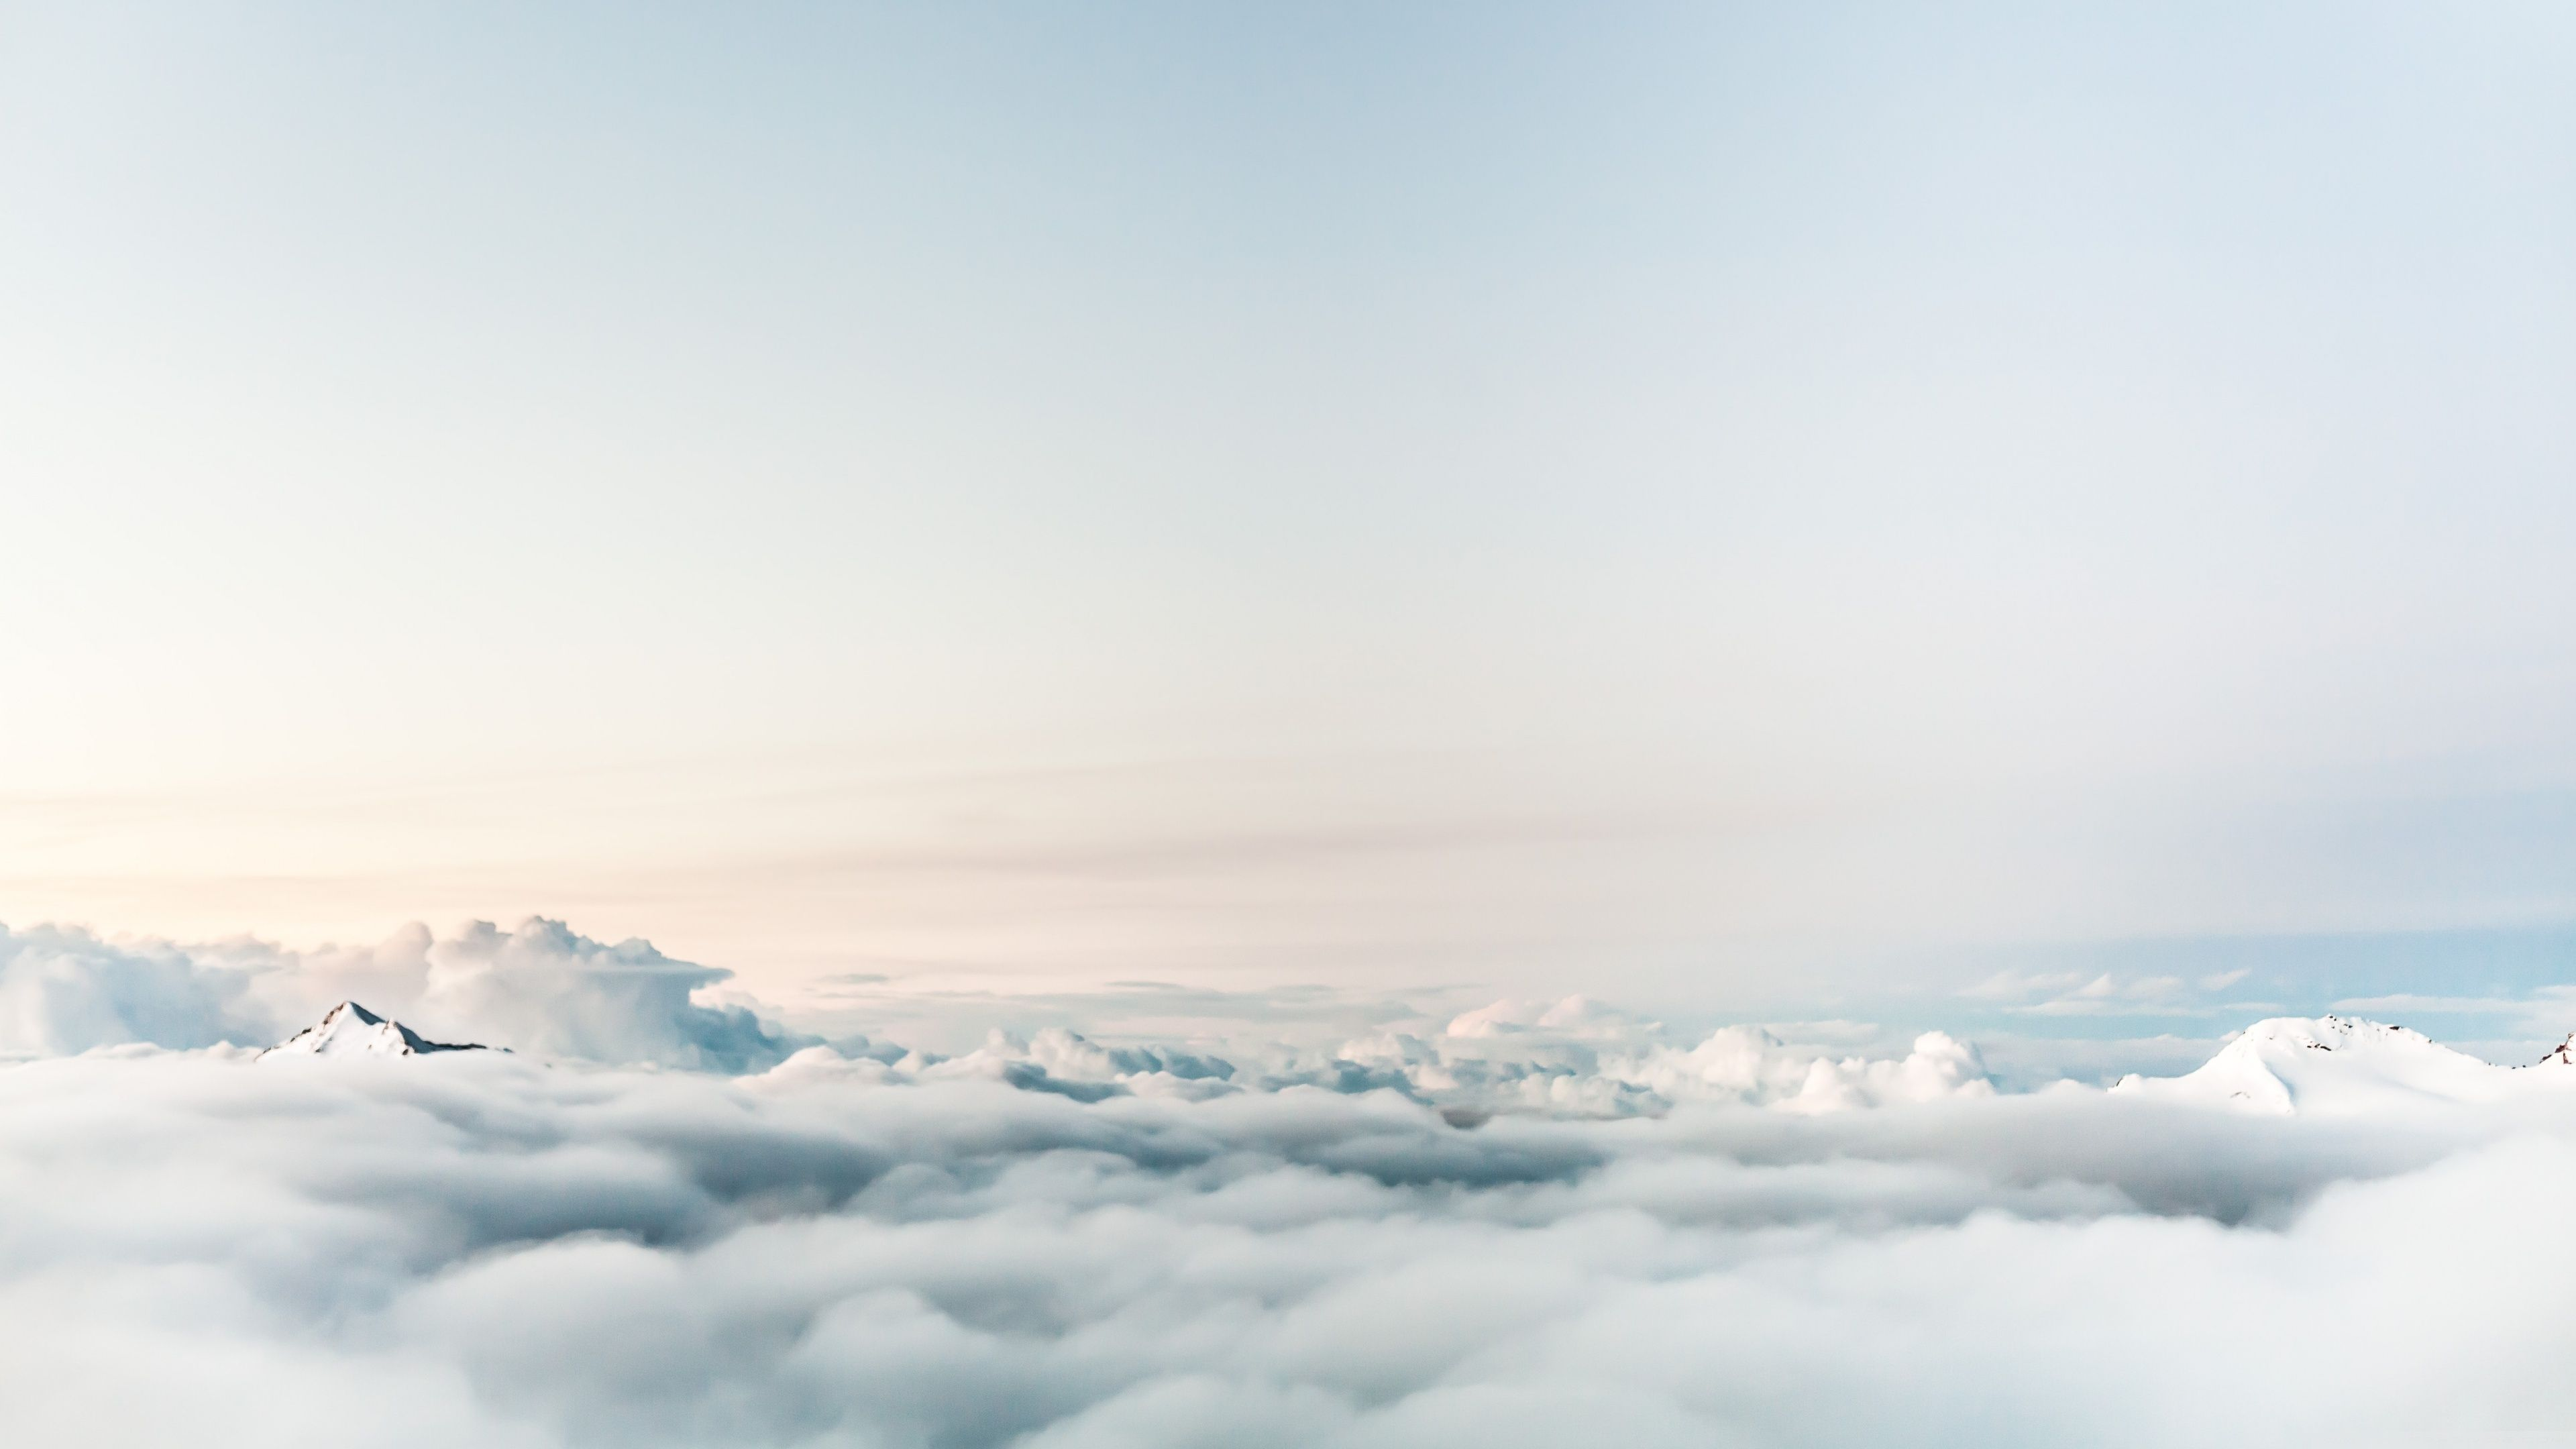 Sea Of Clouds Ultra HD Desktop Backgrounds Wallpapers for 4K UHD TV